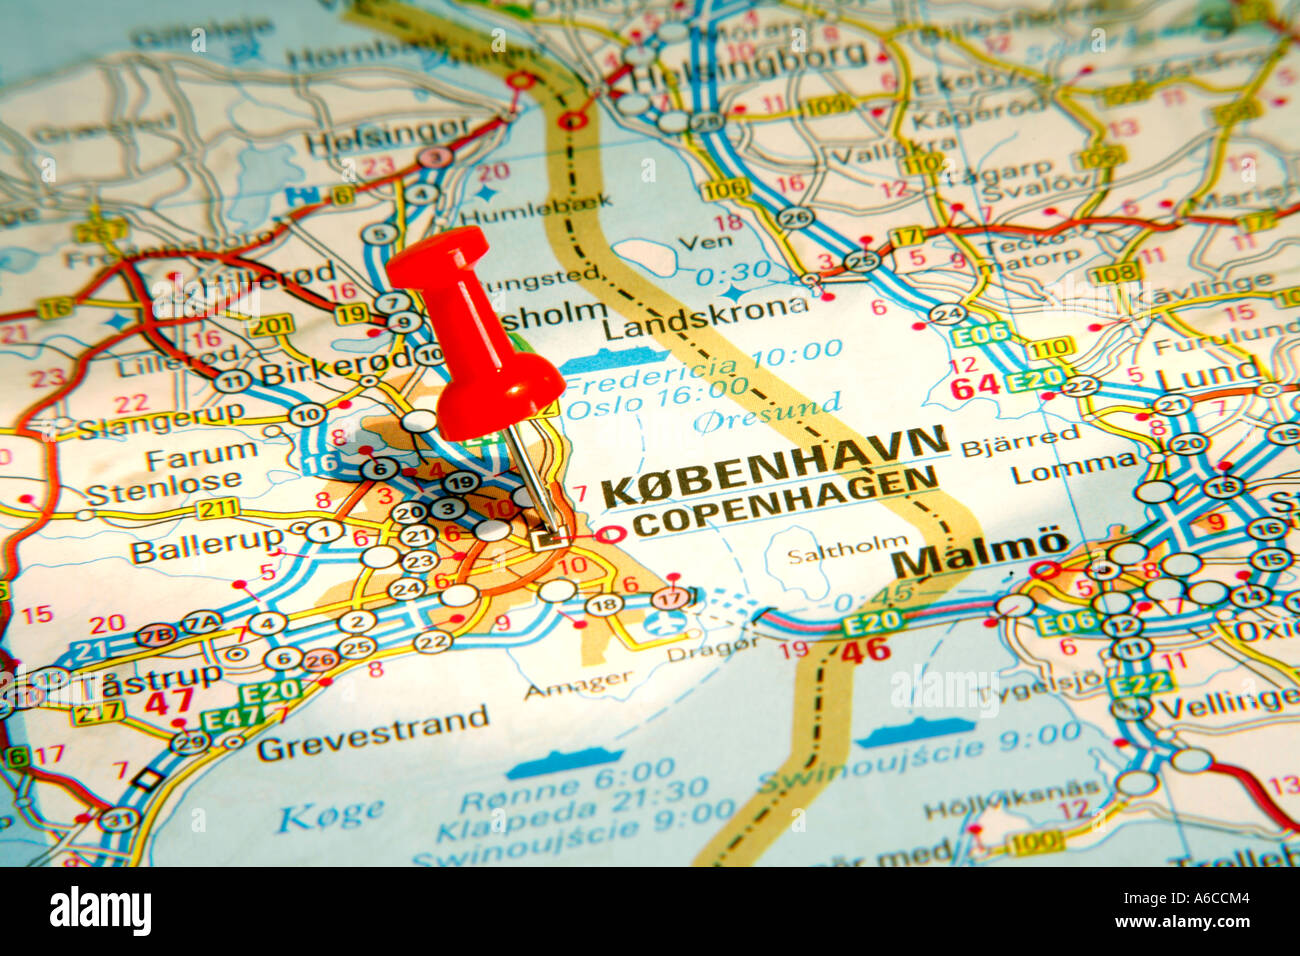 Map Pin pointing to Copenhagen , Denmark on a road map - Stock Image